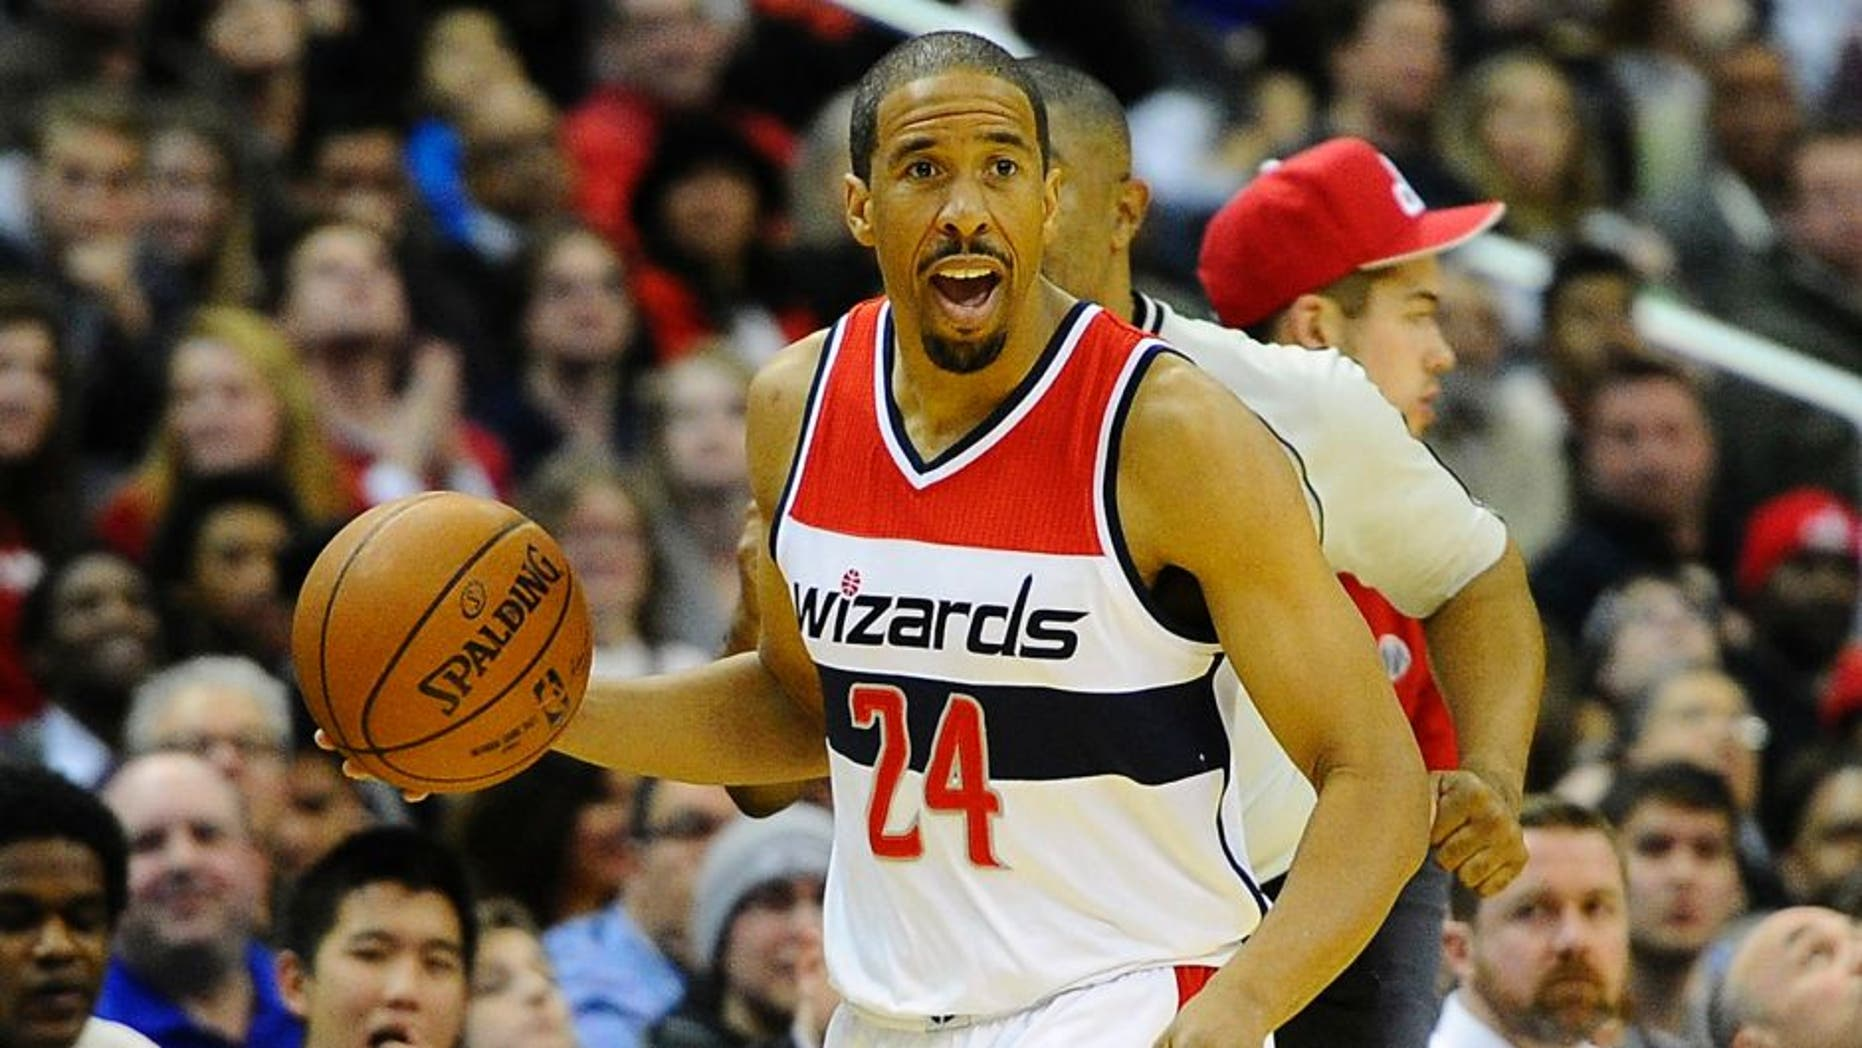 Jan 13, 2015; Washington, DC, USA; Washington Wizards guard Andre Miller (24) advances the ball against the San Antonio Spurs during the second half at Verizon Center. The Wizards won 101-93. Mandatory Credit: Brad Mills-USA TODAY Sports